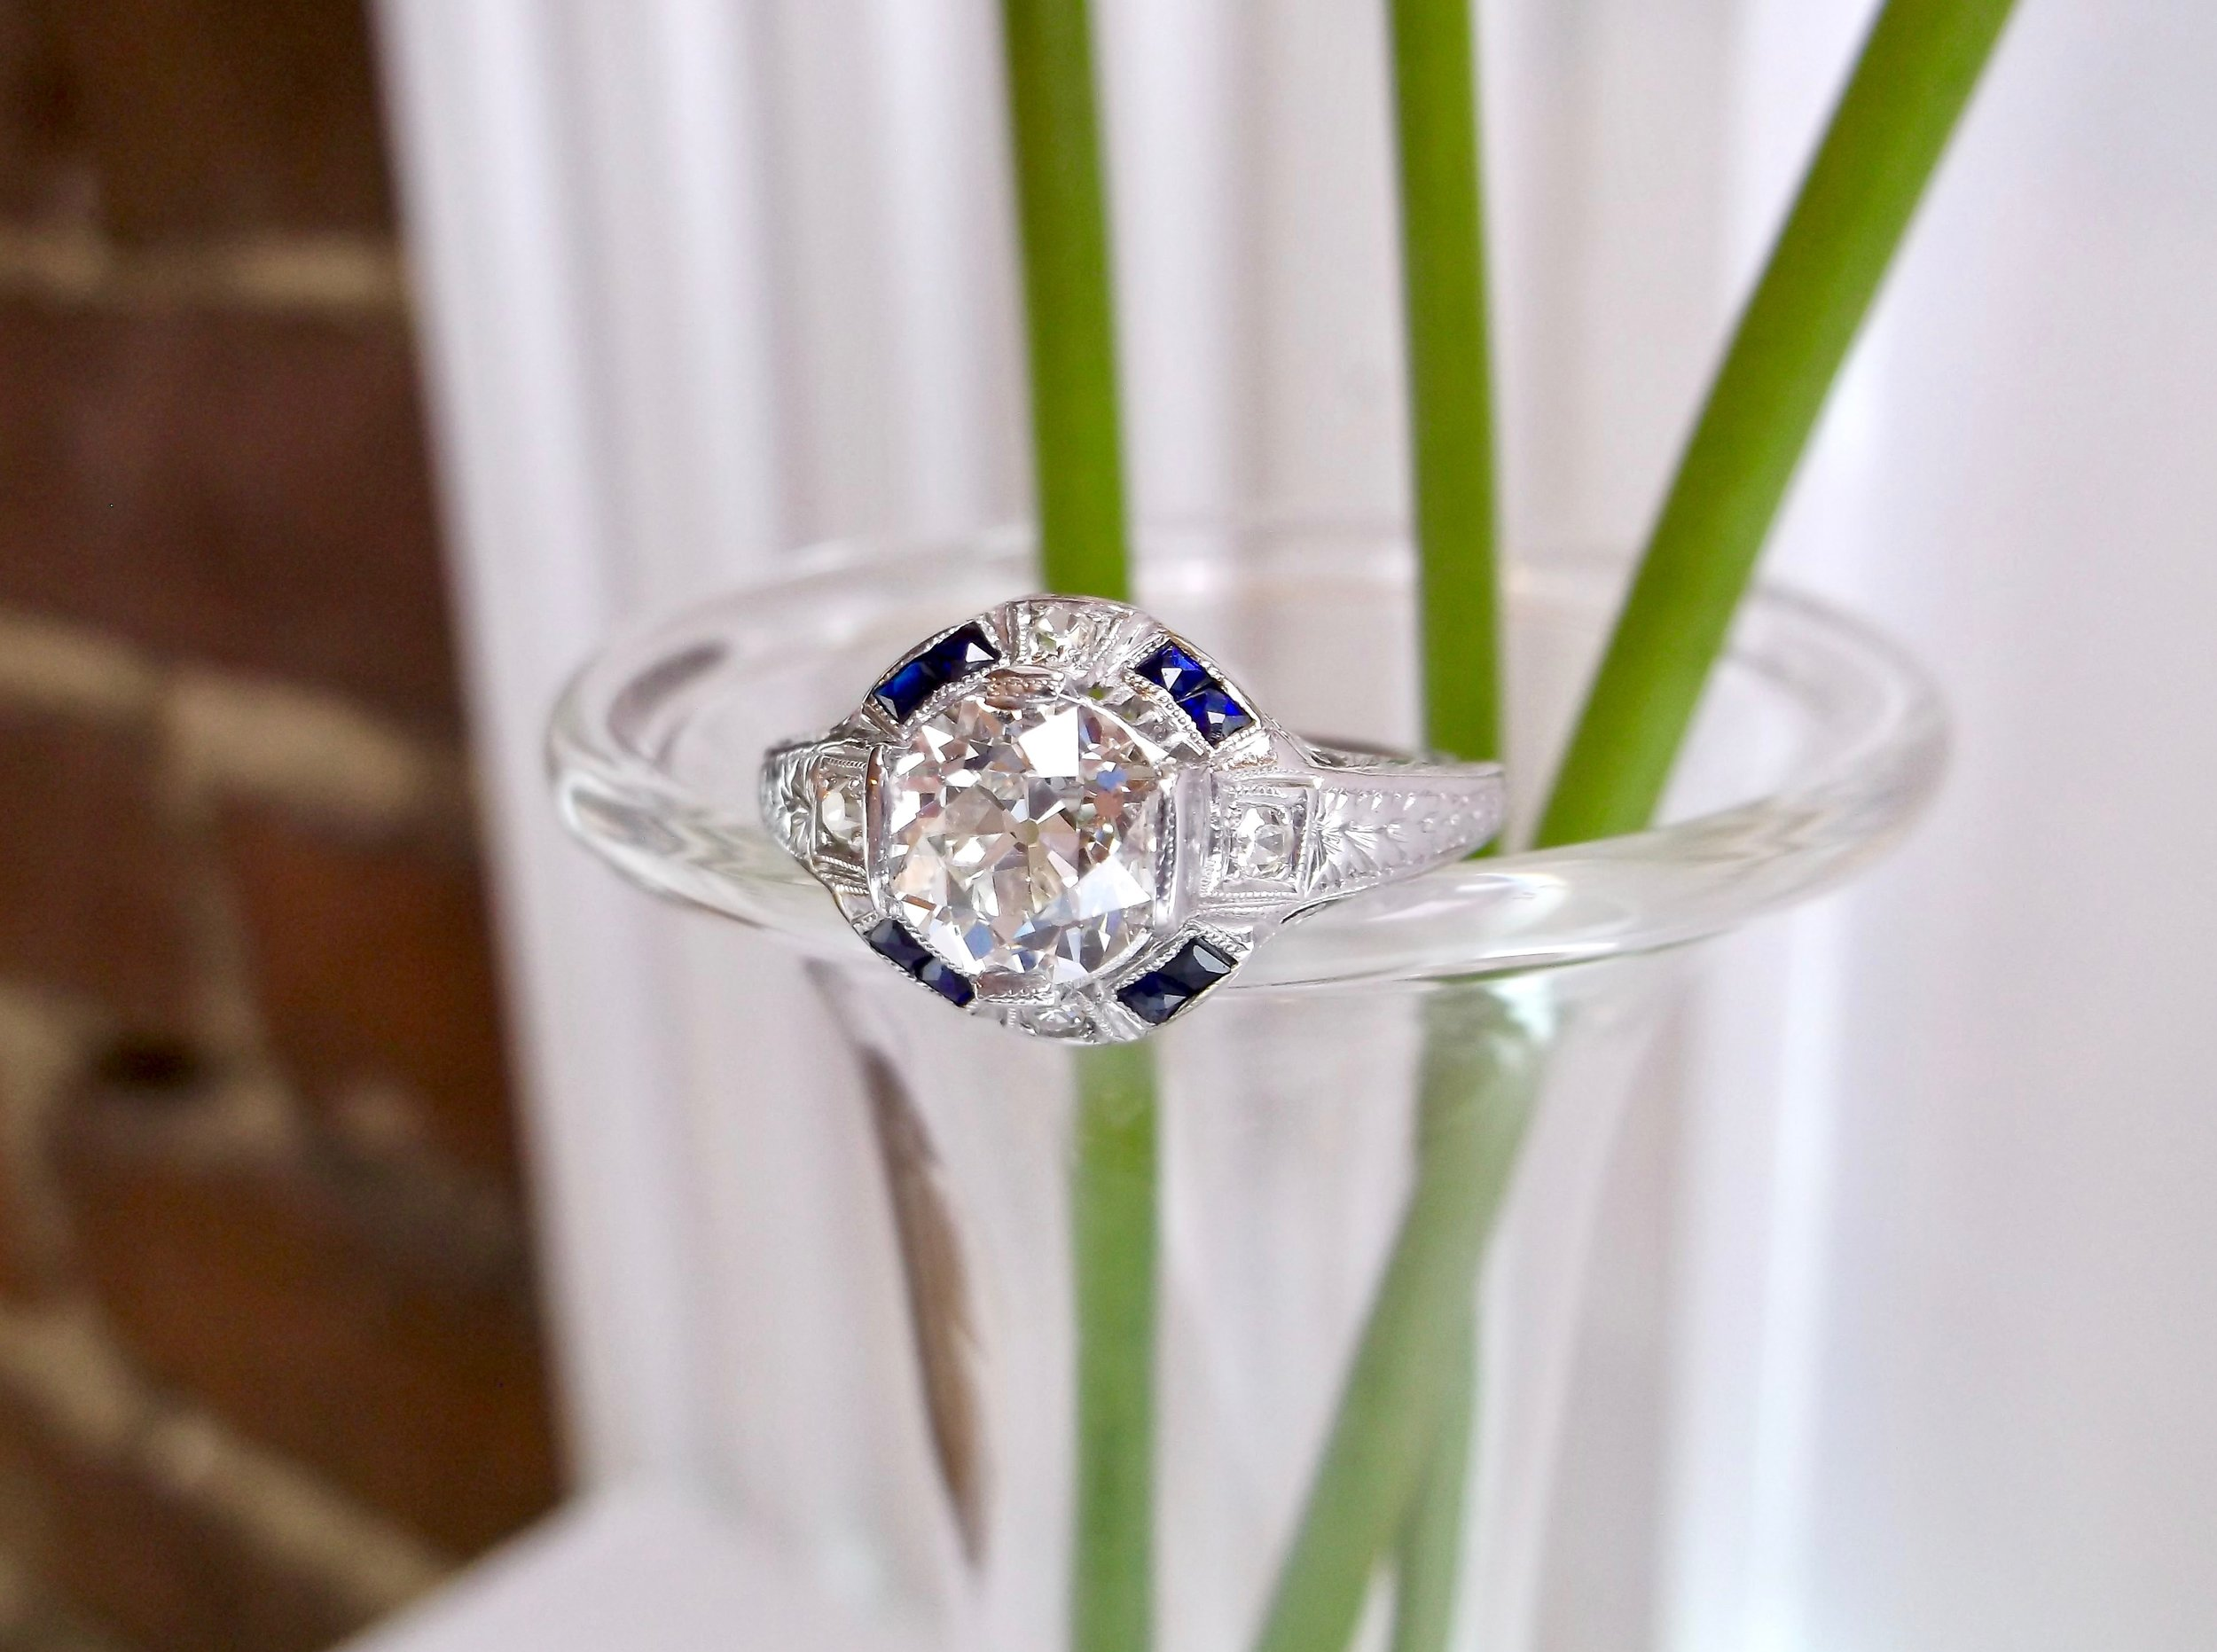 It's all in those eye catching sapphire details with this gorgeous 1930's diamond ring! The ring features a center 1.40 carat Old European cut diamond, beautifully complimented by 0.12 carats in accent sapphires and 0.10 carats in accent diamonds, all set in platinum. Shop this stunning ring  HERE